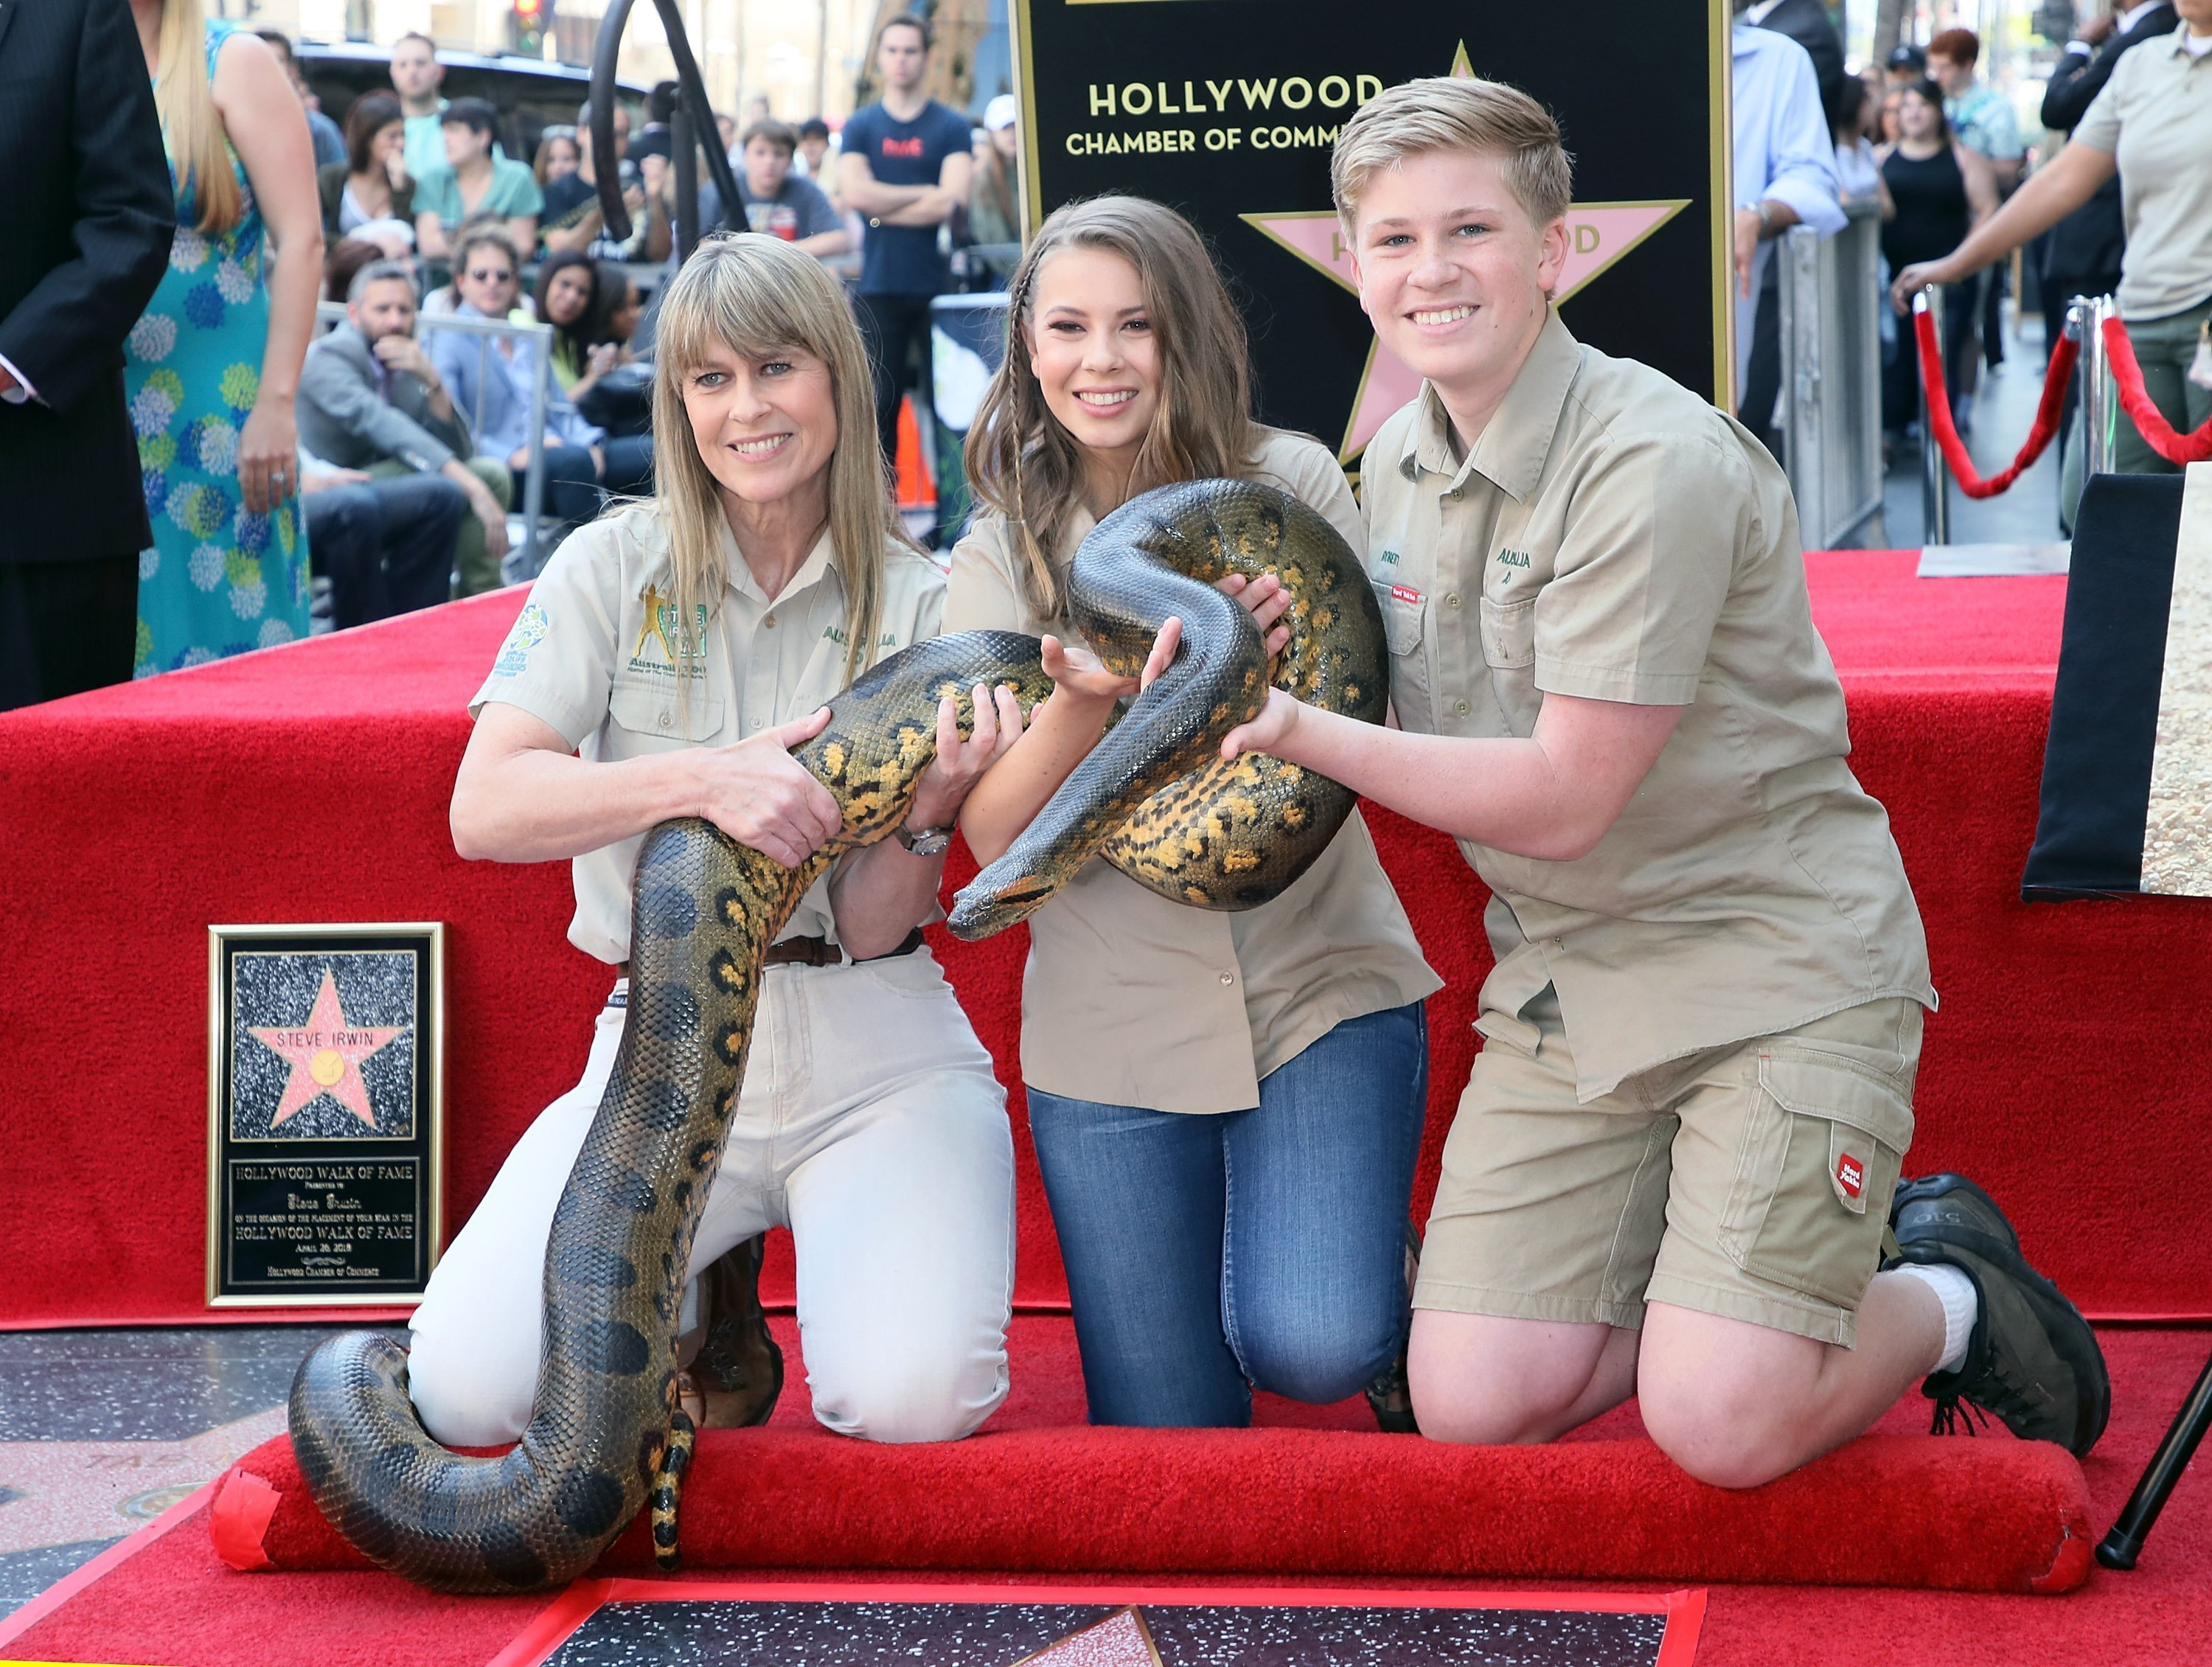 Terri, Bindi and Robert Irwin on the walk of fame as Steve Irwin is honored posthumously with a Star on the Hollywood Walk of Fame on April 26, 2018 | Photo: Getty Images